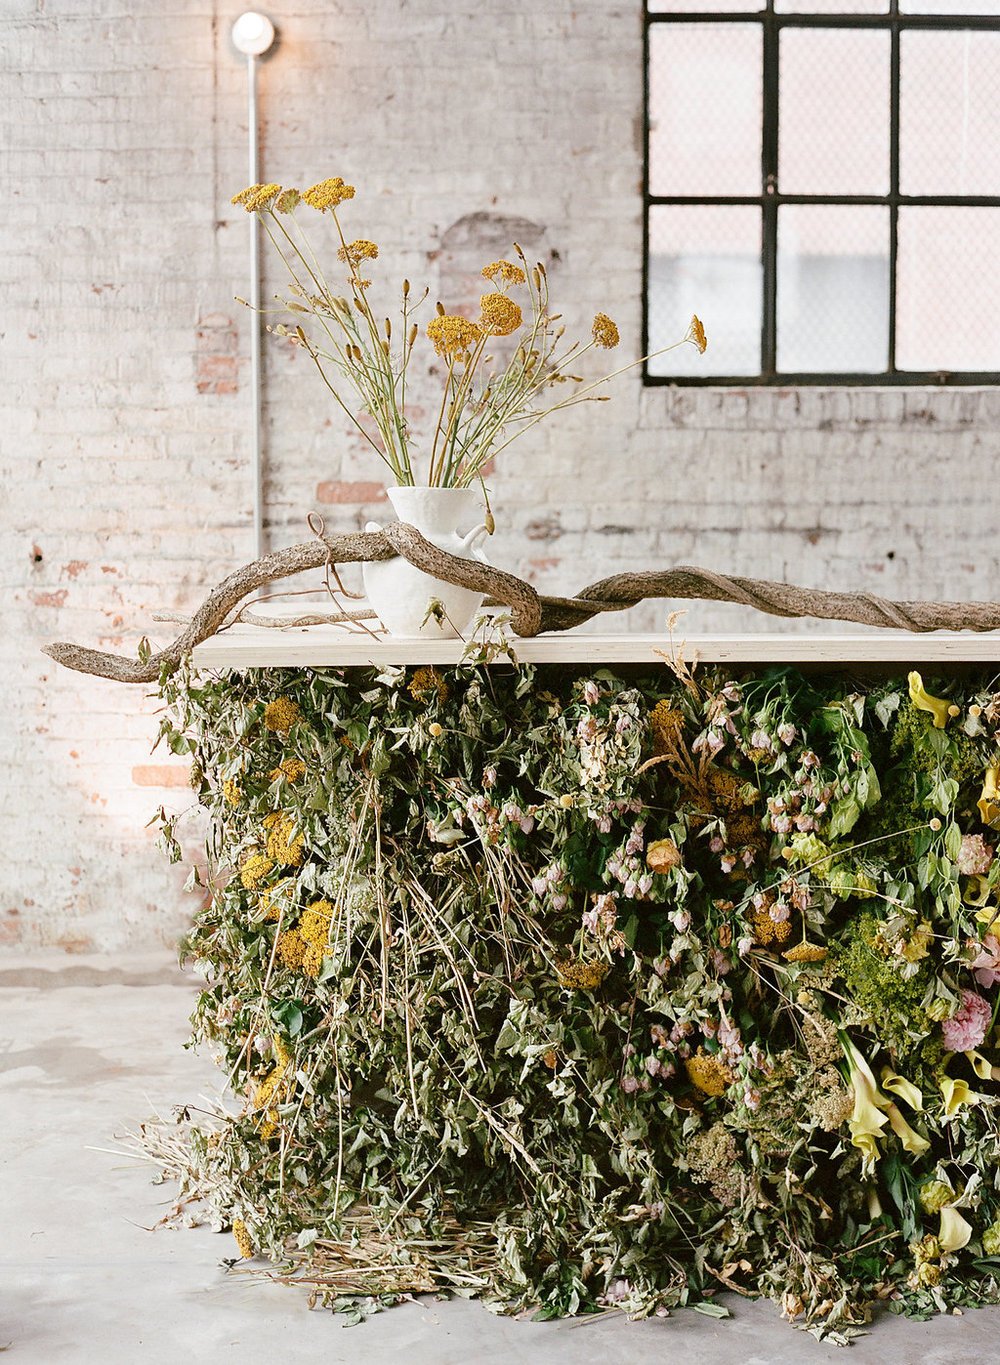 Floral installation by Saipua. Photo by Heather Waraksa.